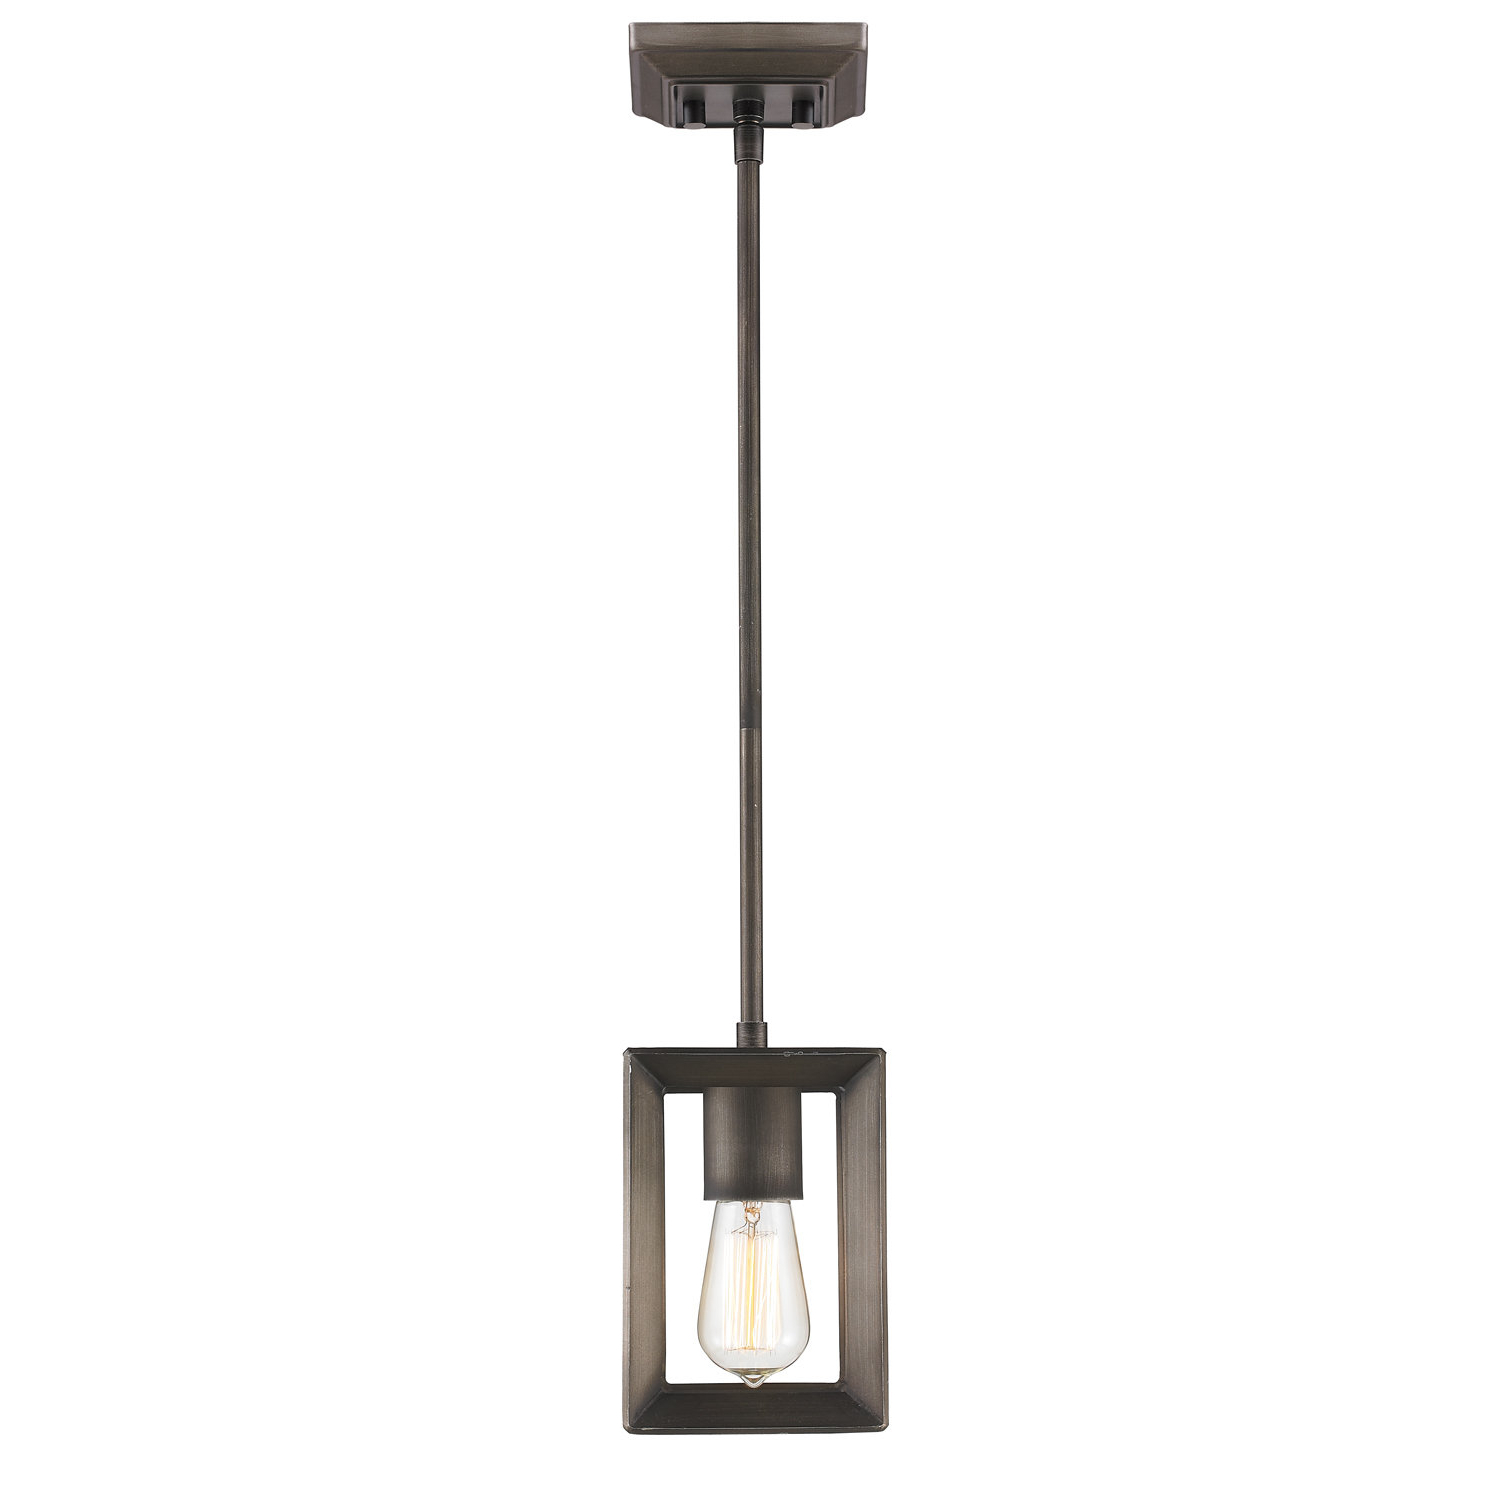 Thorne 1 Light Single Square / Rectangle Pendant Within Most Recent Sue 1 Light Single Jar Pendants (View 10 of 20)